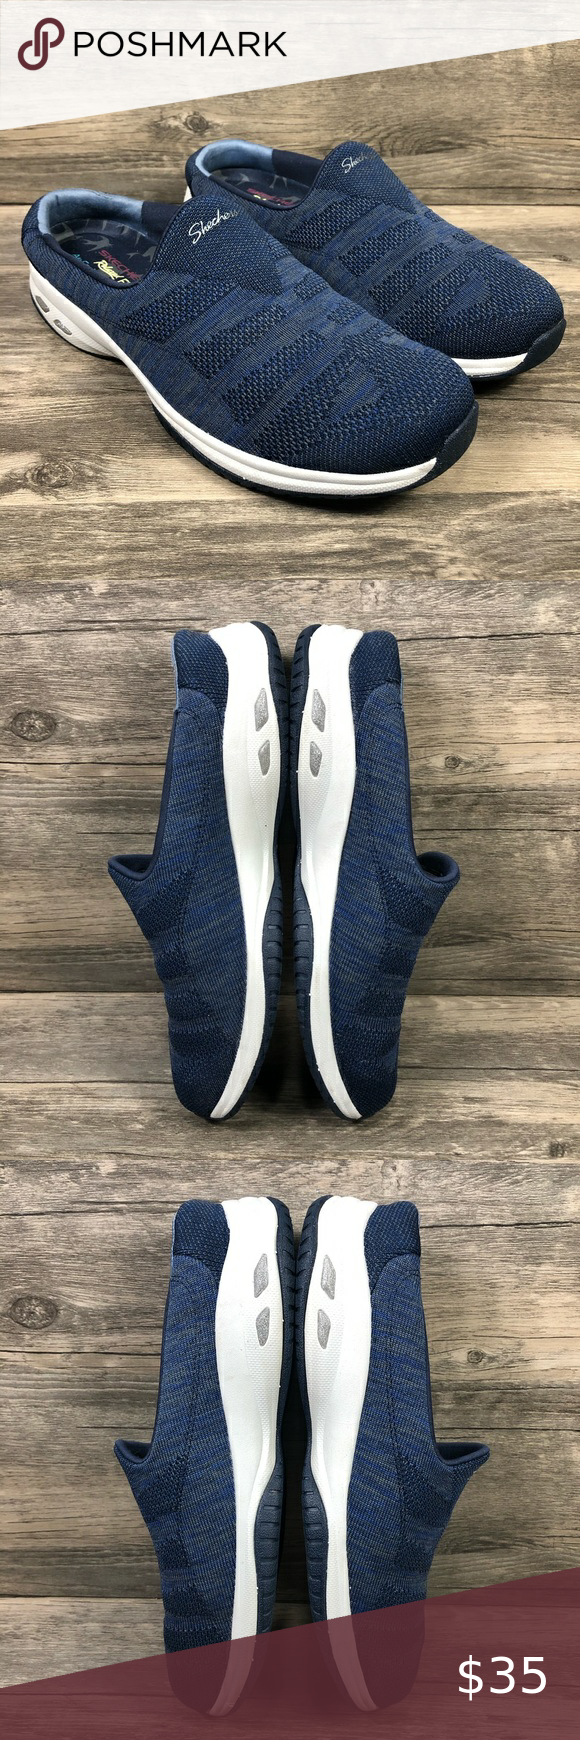 Skechers Air Cooled Memory Foam Relaxed